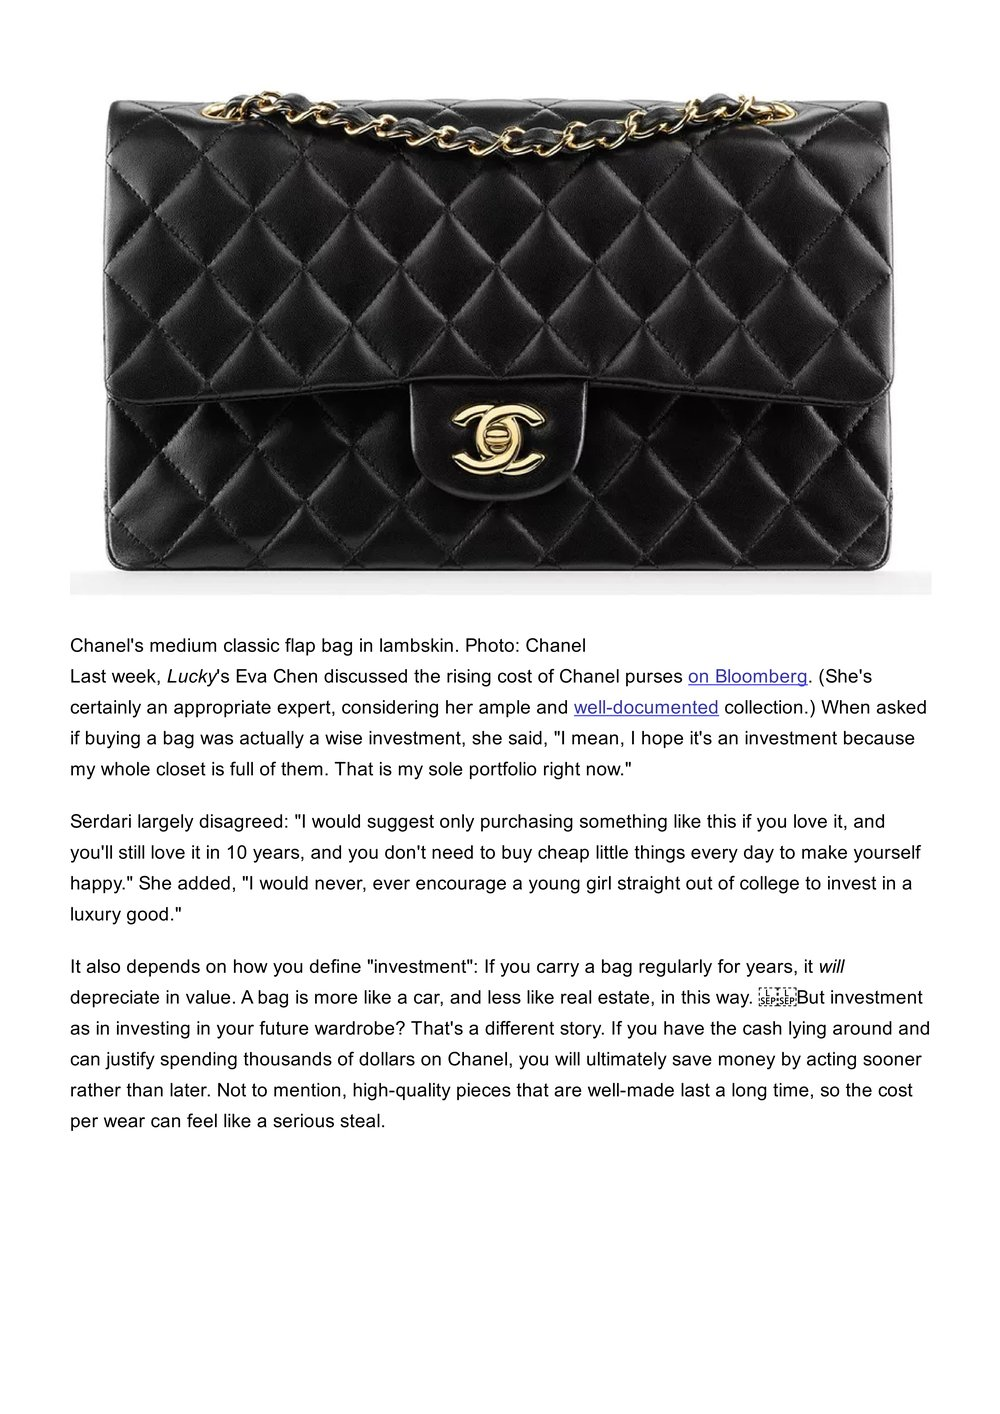 See How Much Chanel Bag Prices Have Skyrocketed This Decade - Racked2.jpg